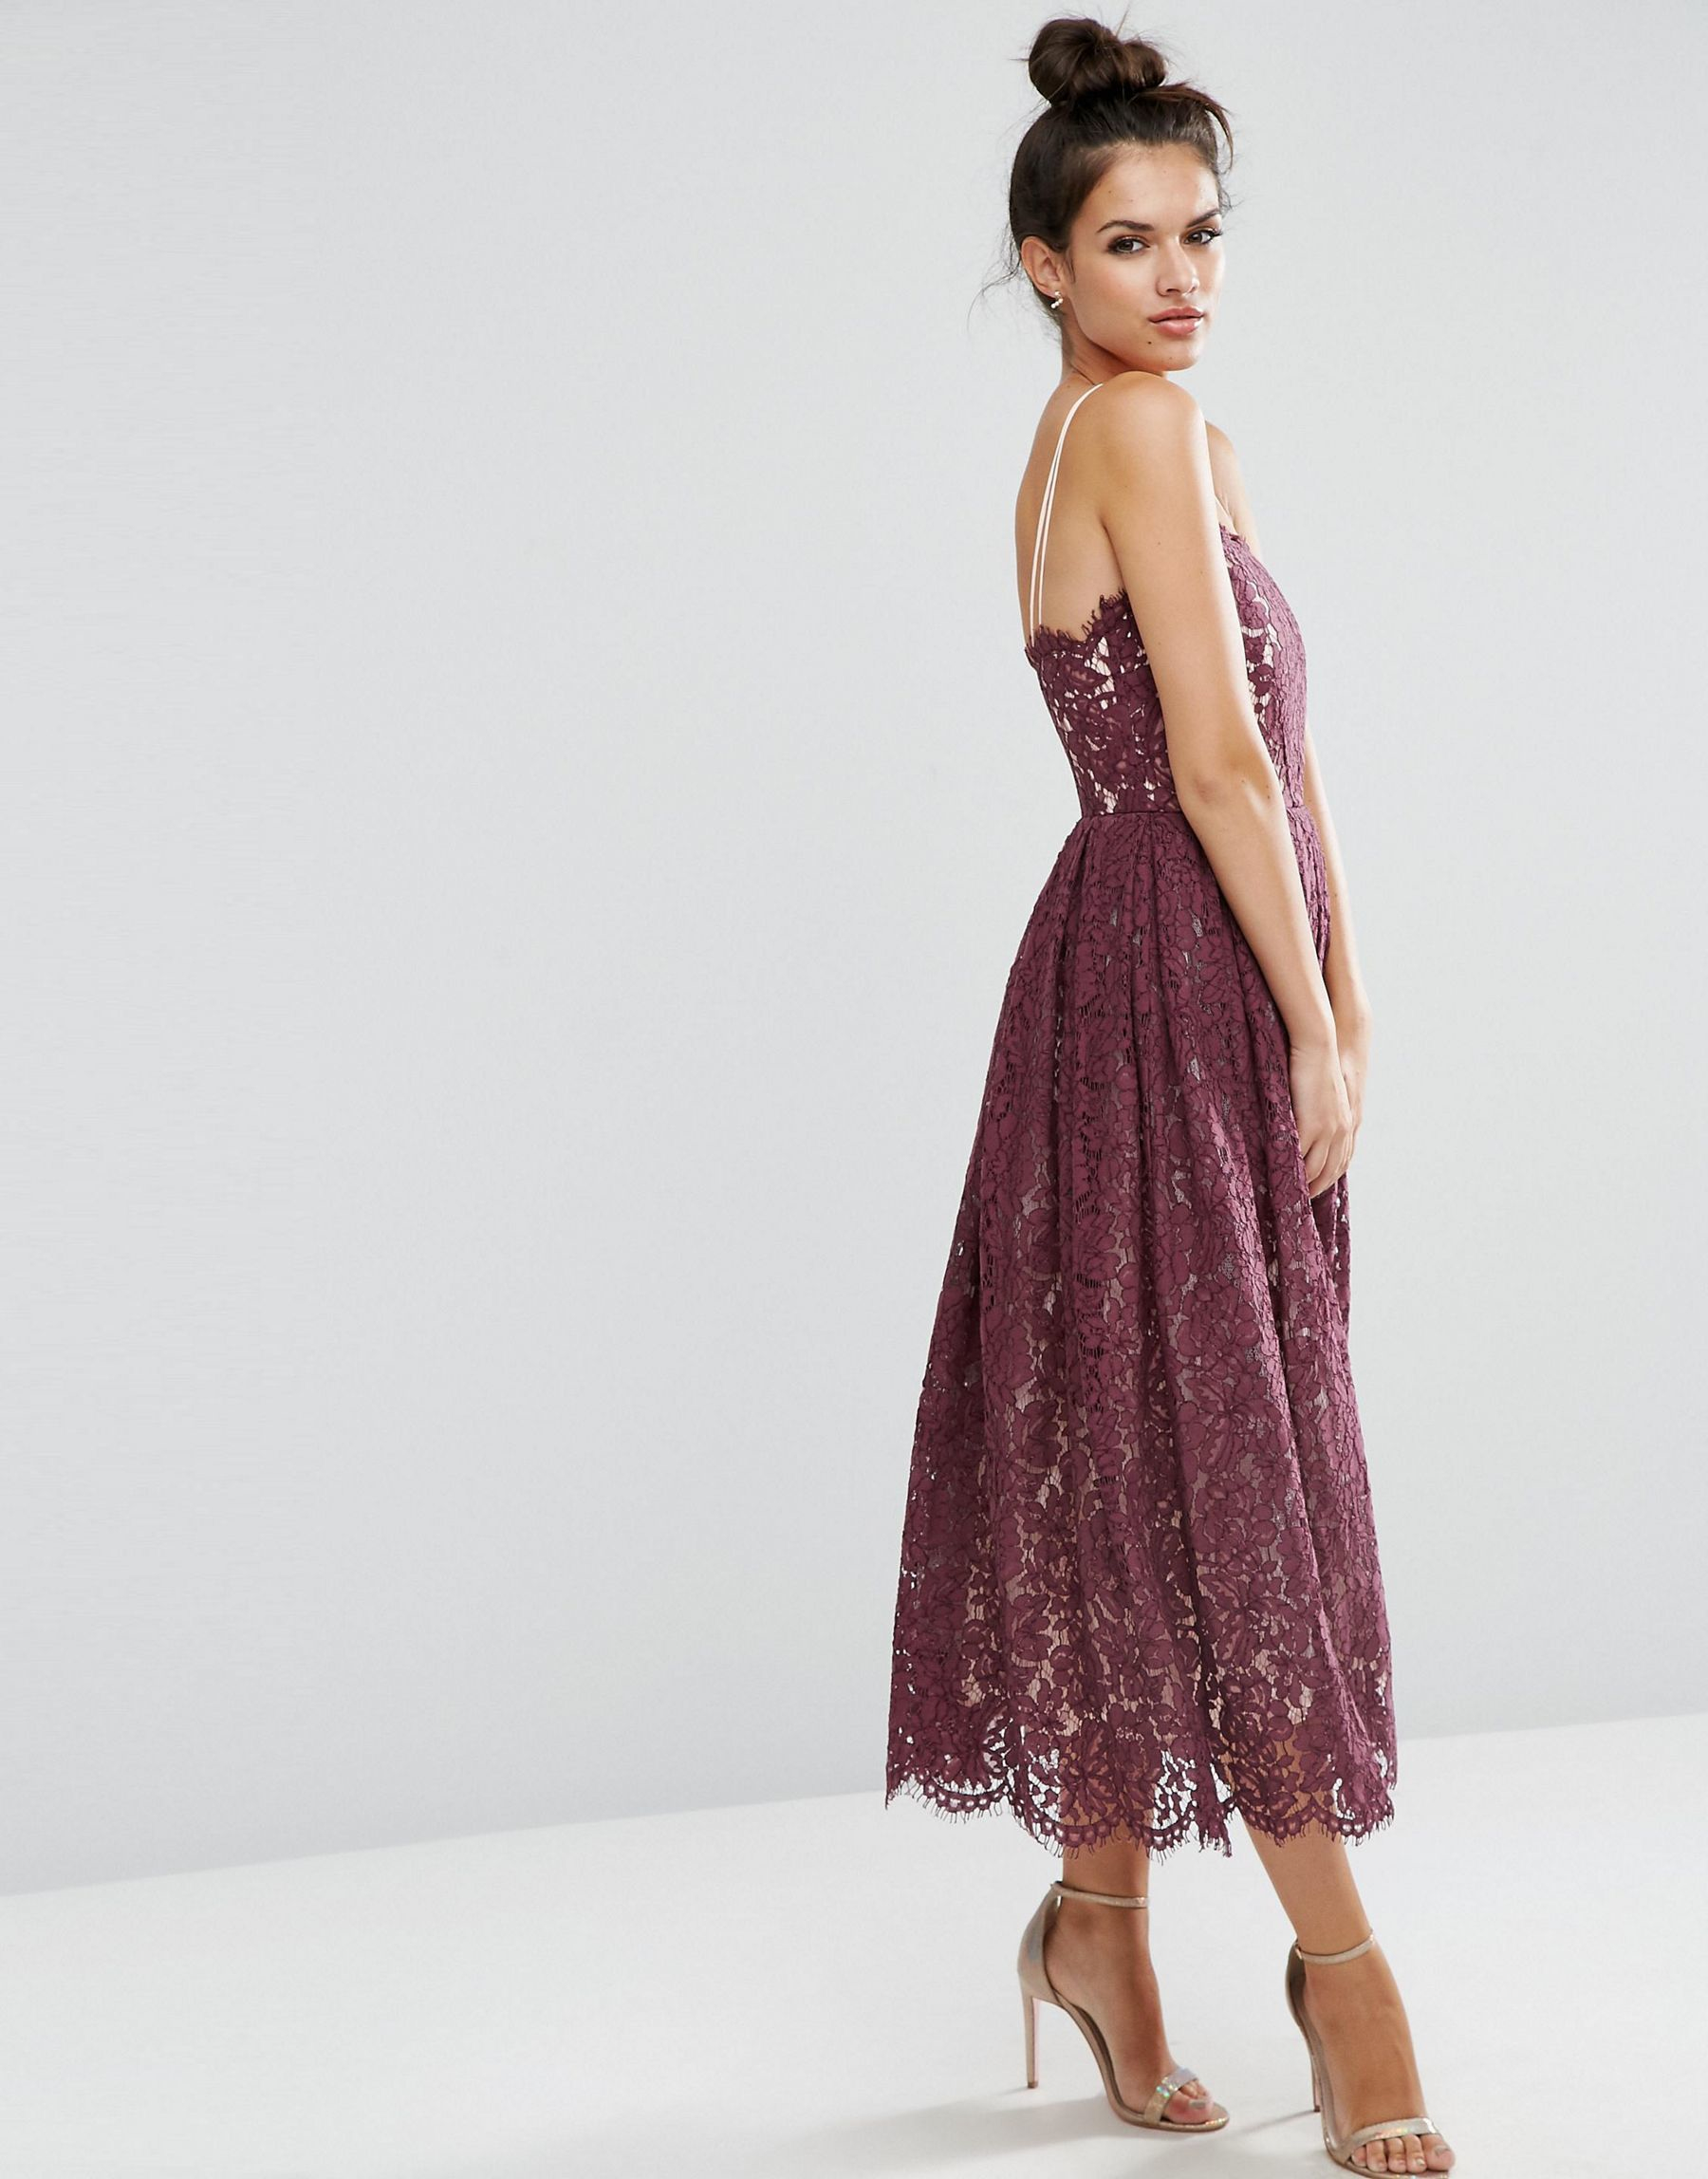 db4d9f609ed ASOS Delicate Lace Bandeau Prom Dress in Purple - Lyst